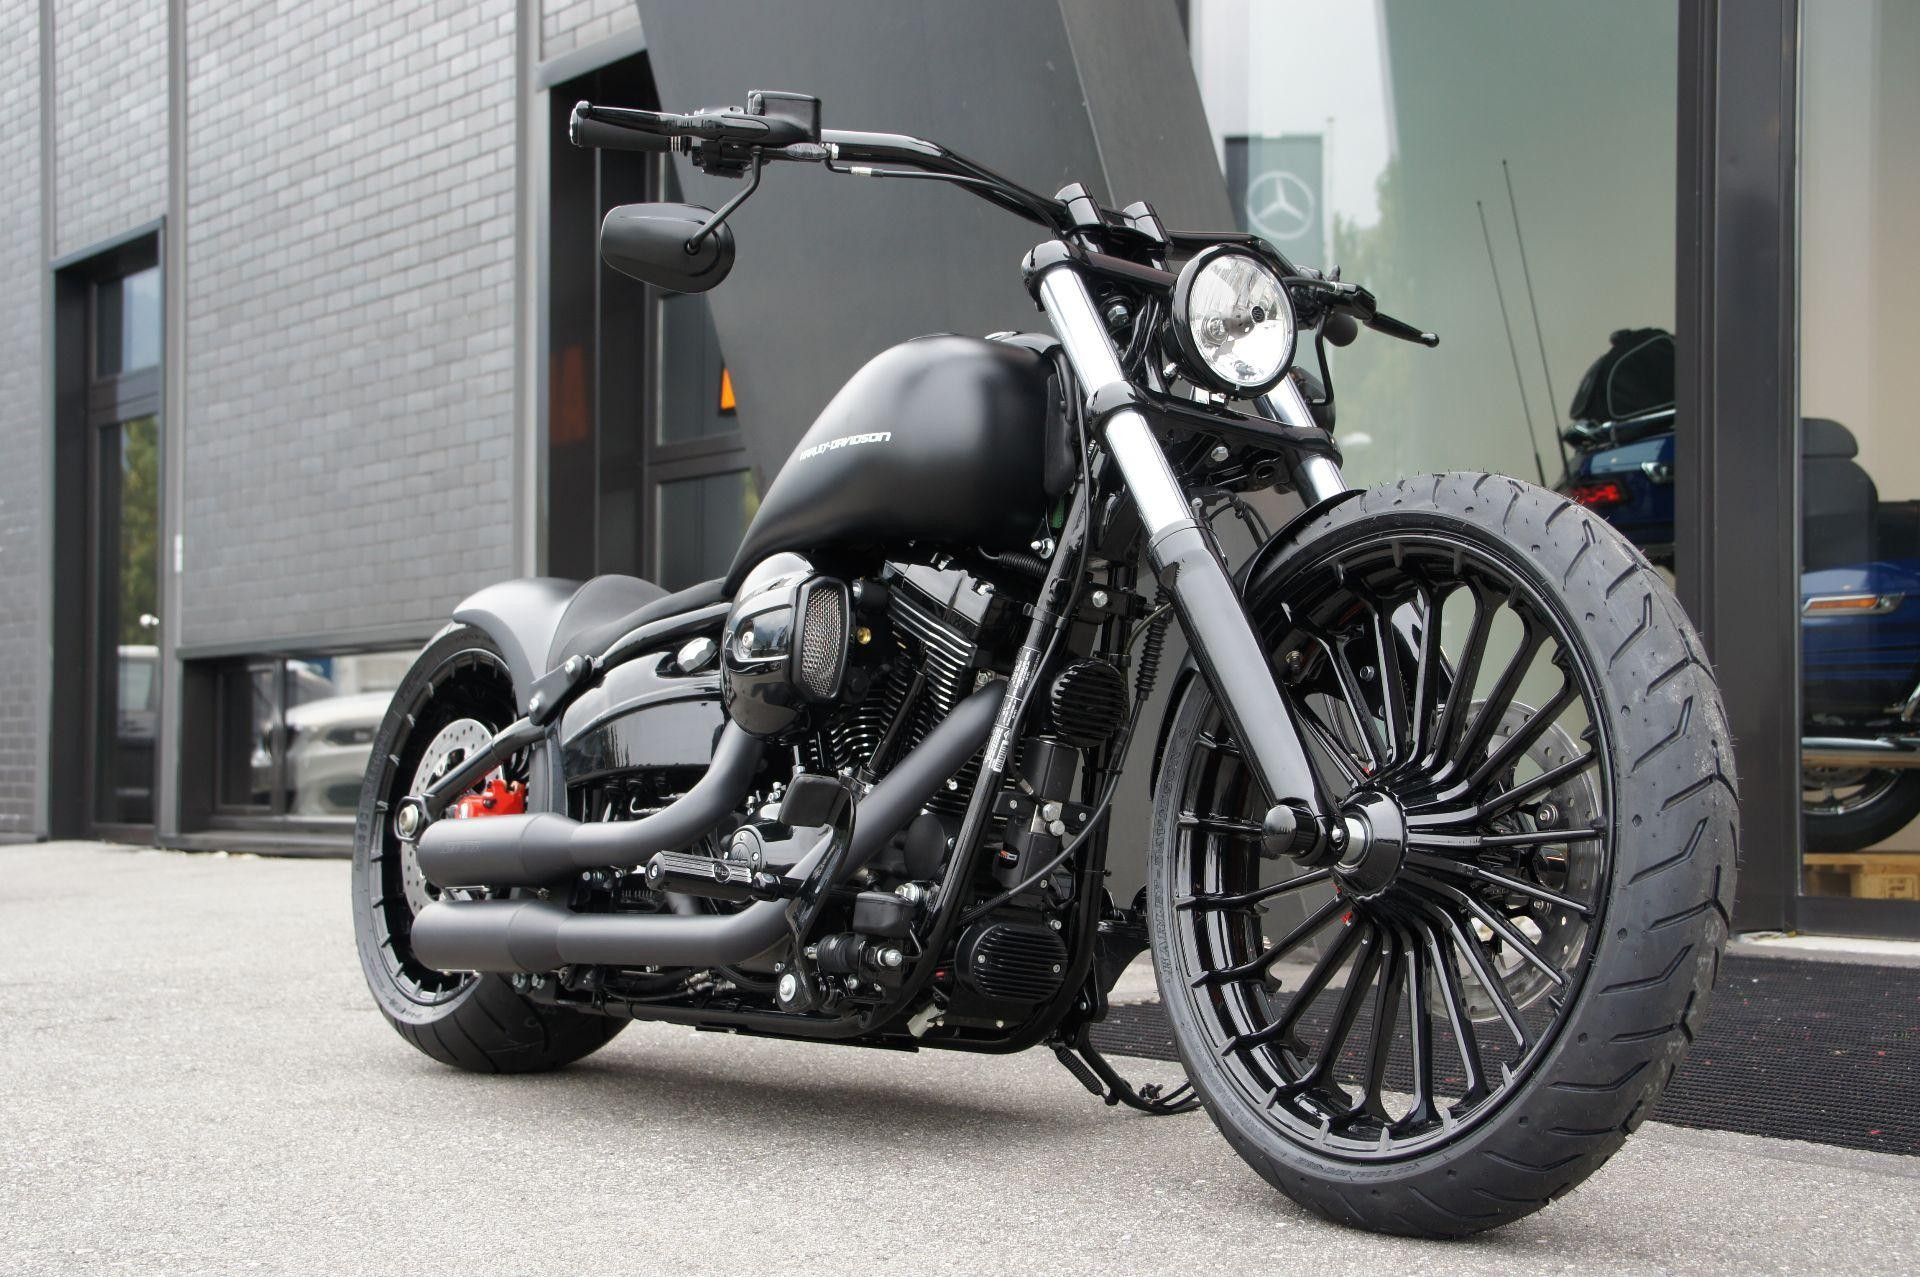 Harley davidson softail breakout love the 240 rear tire muscle dragster look bikes pinterest harley davidson and wheels